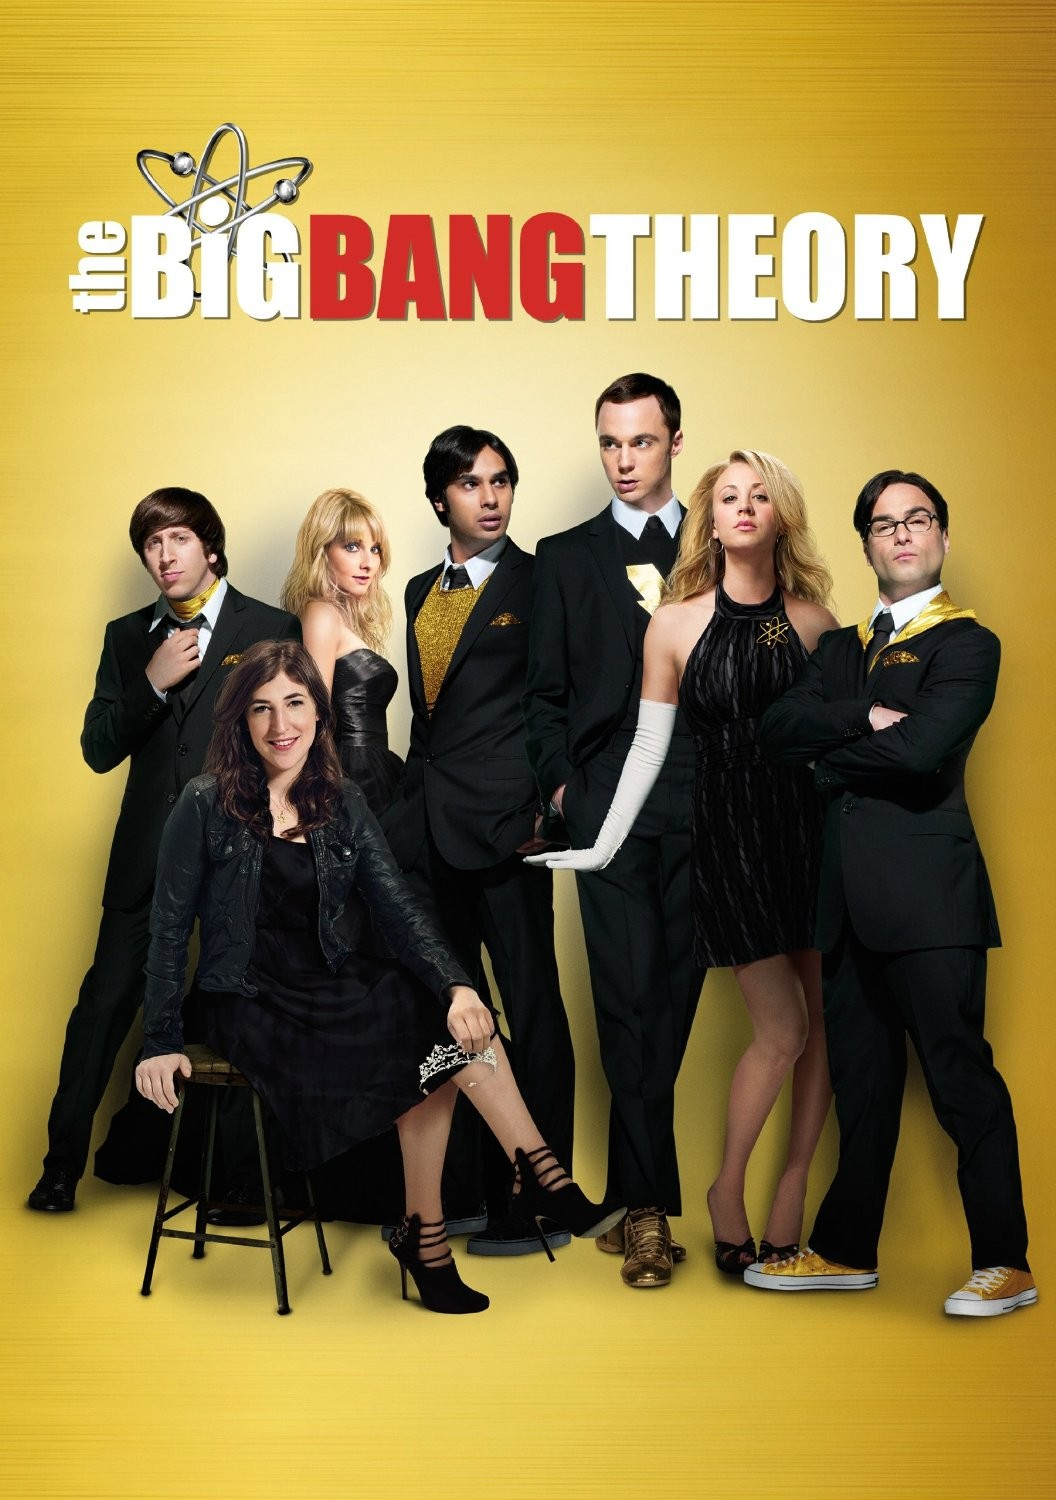 The Big Bang Theory (Season 8) 生活大爆炸 第八季